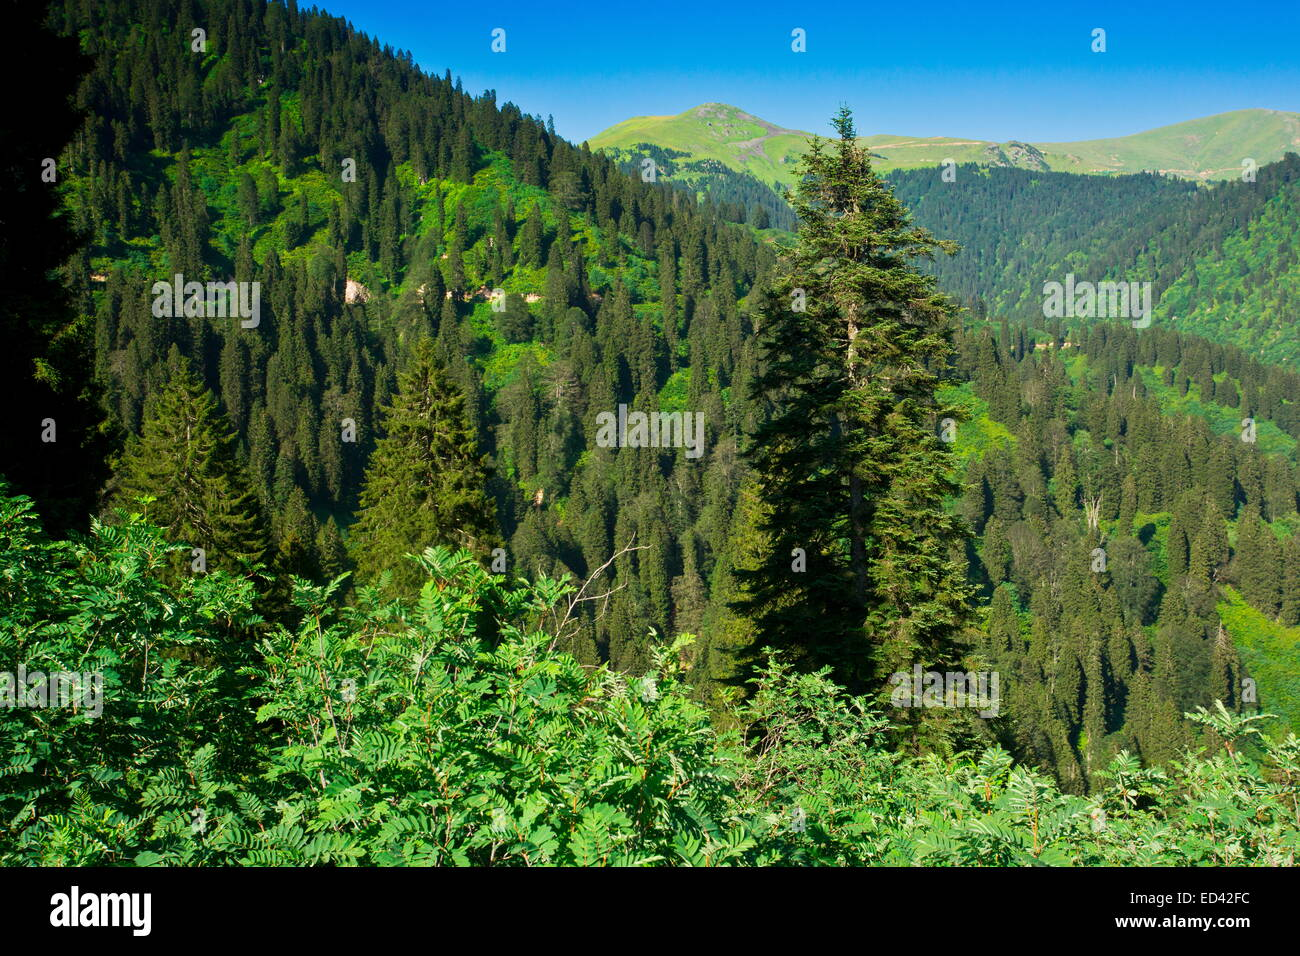 Euxine forest of Picea orientalis and Abies nordmanniana on the north slopes of the Pontic Alps near Ikizdere, north - Stock Image